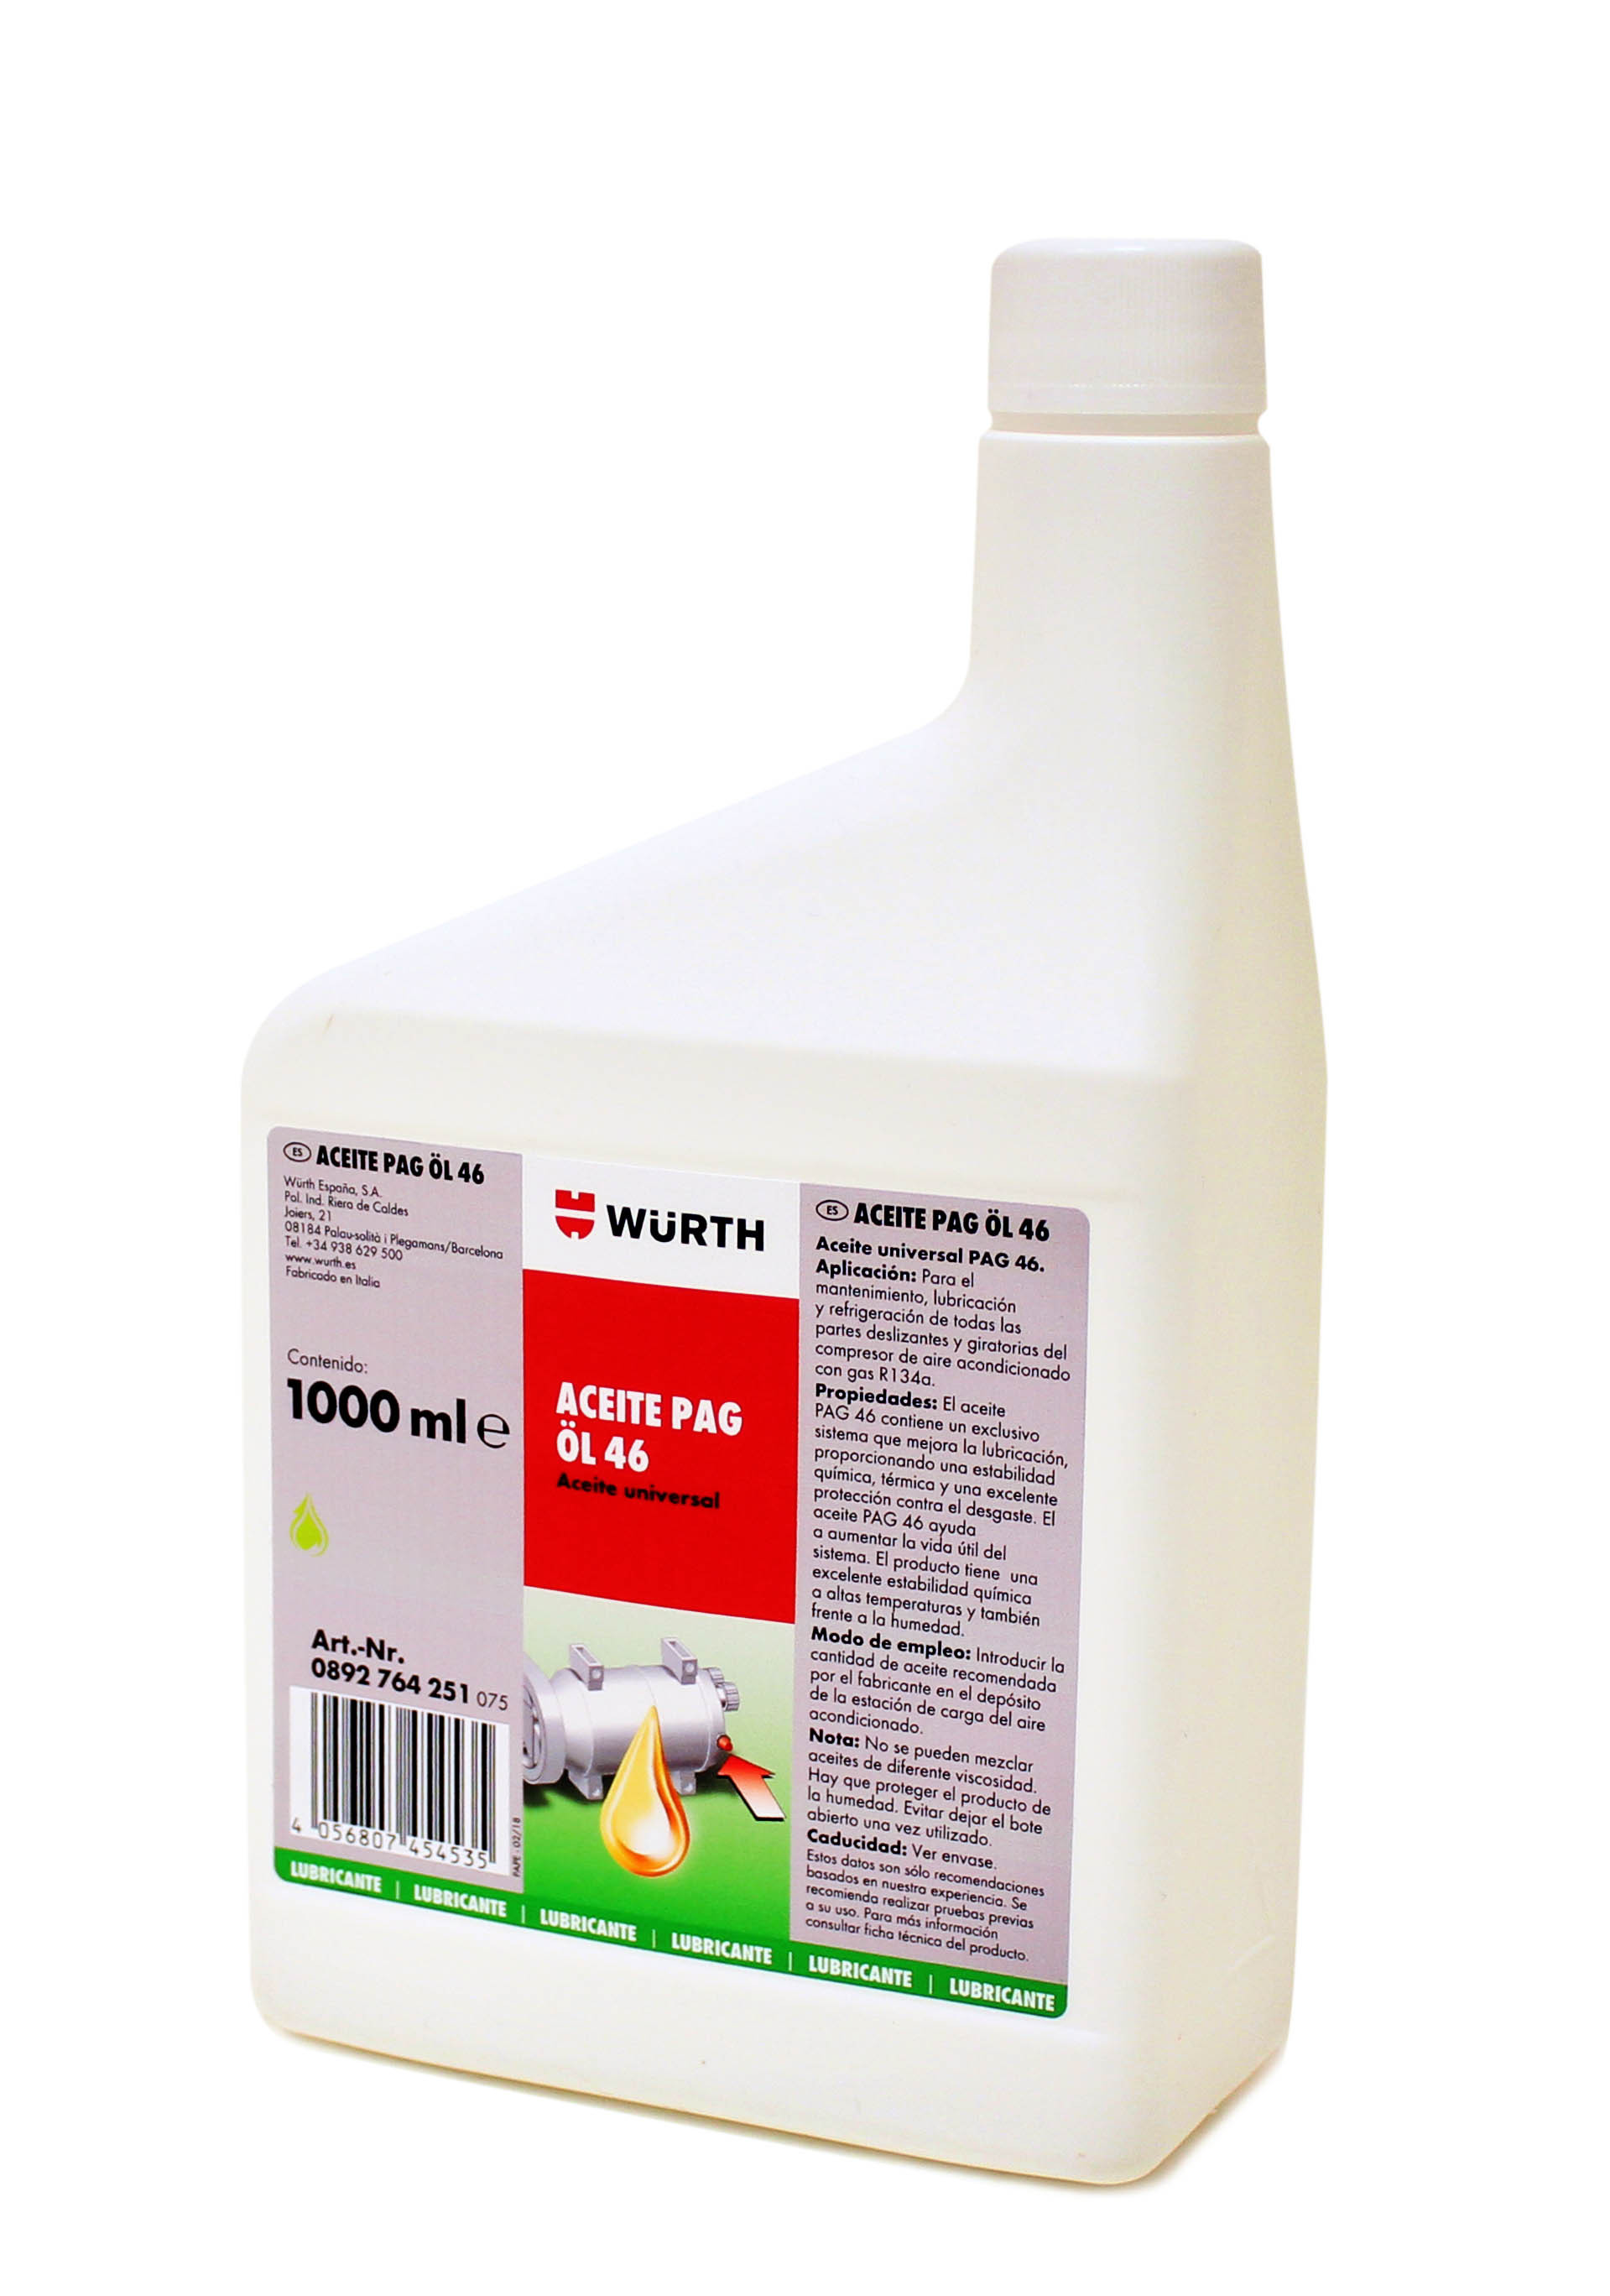 ACEITE PAG L 46, 250 ML.